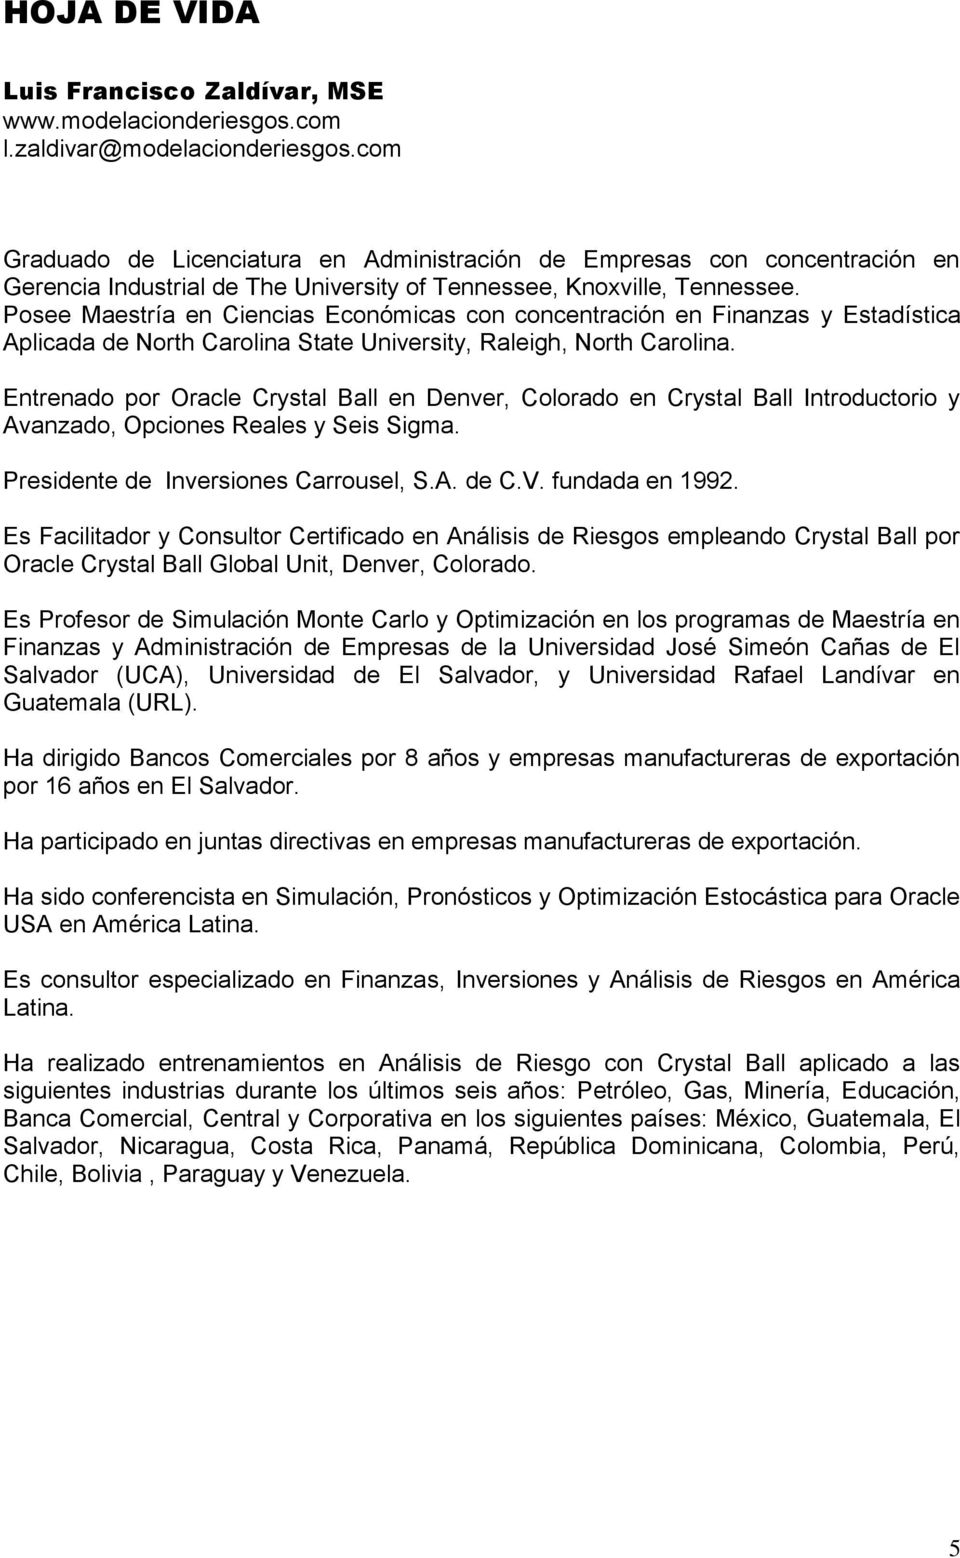 Posee Maestría en Ciencias Económicas con concentración en Finanzas y Estadística Aplicada de North Carolina State University, Raleigh, North Carolina.